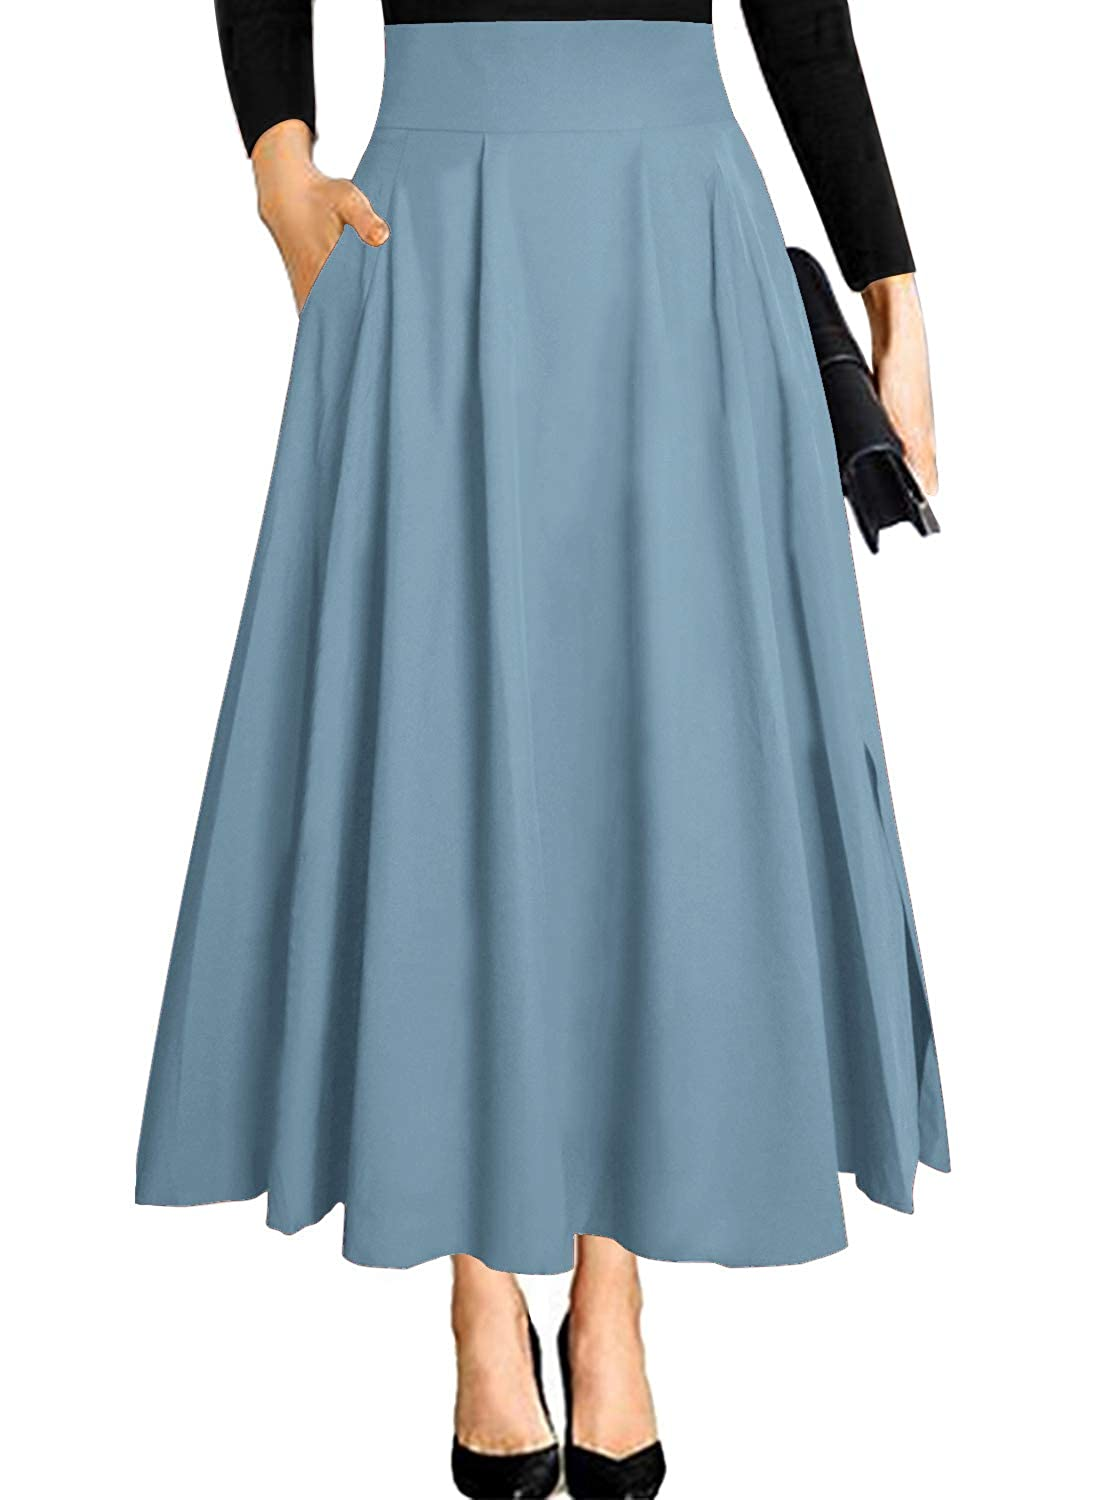 Cottagecore Clothing, Soft Aesthetic Ranphee Womens Ankle Length High Waist A-line Flowy Long Maxi Skirt with Pockets $25.99 AT vintagedancer.com